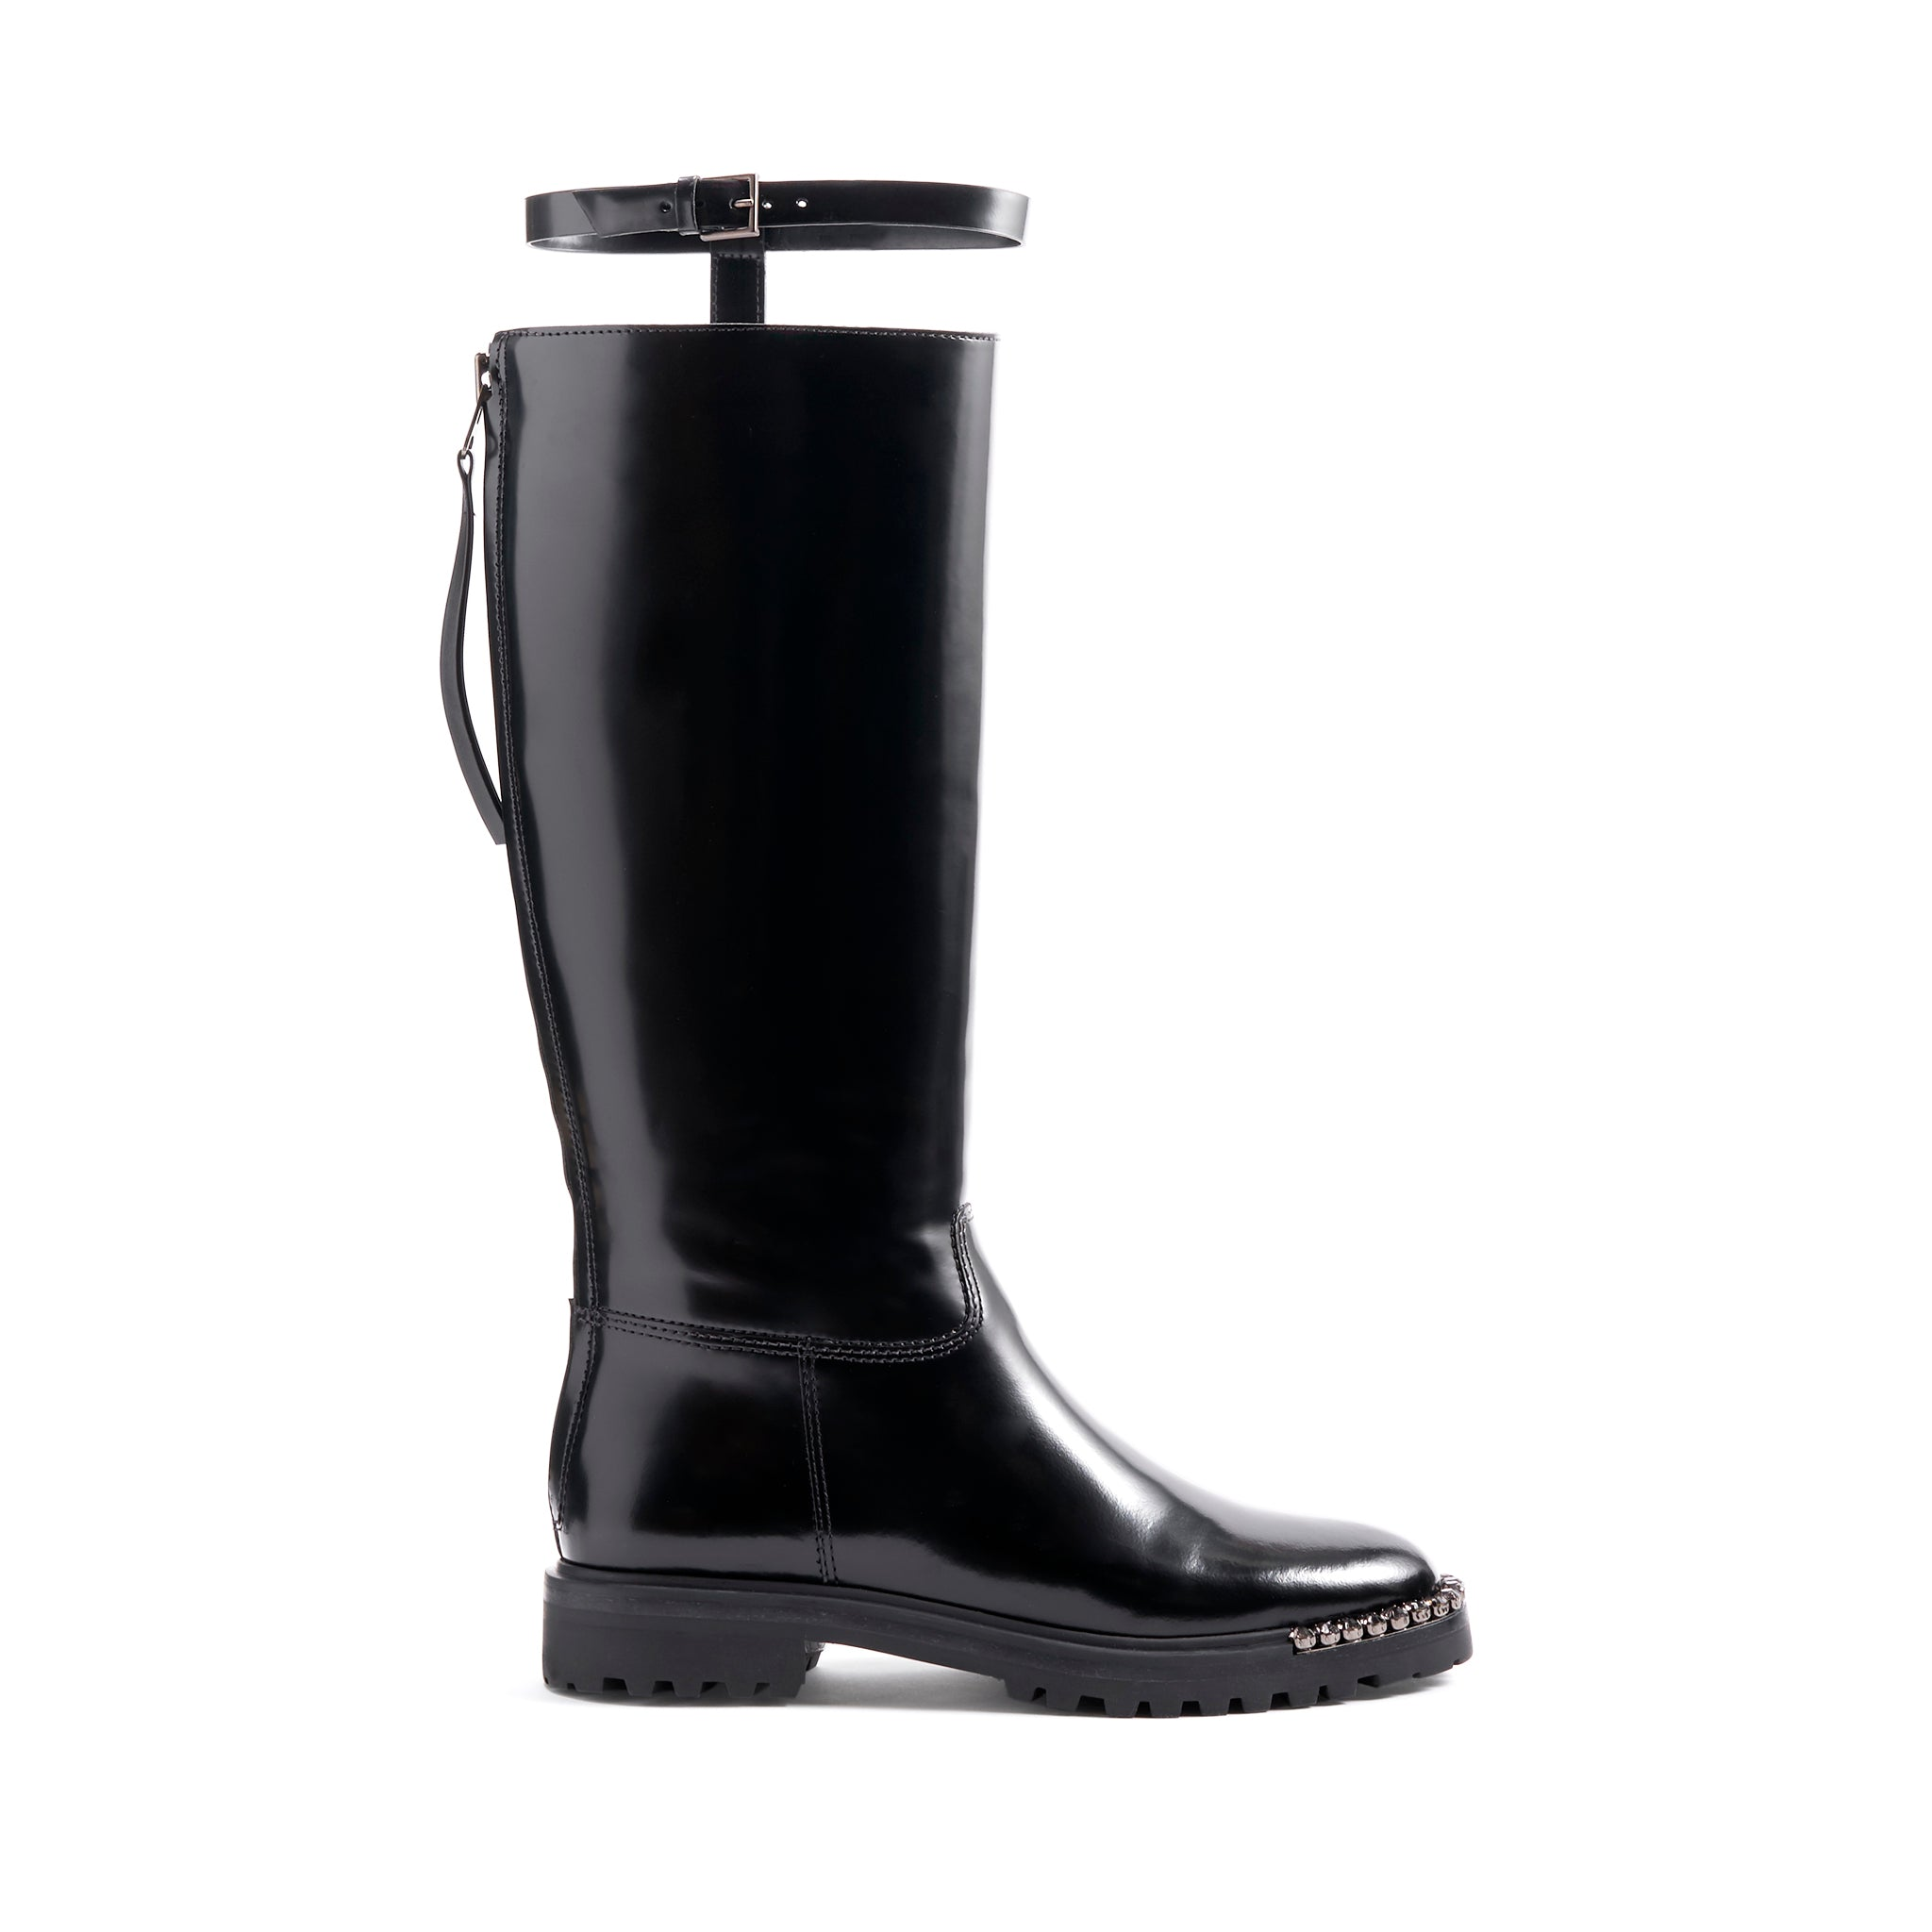 Cianna Boots Black Leather